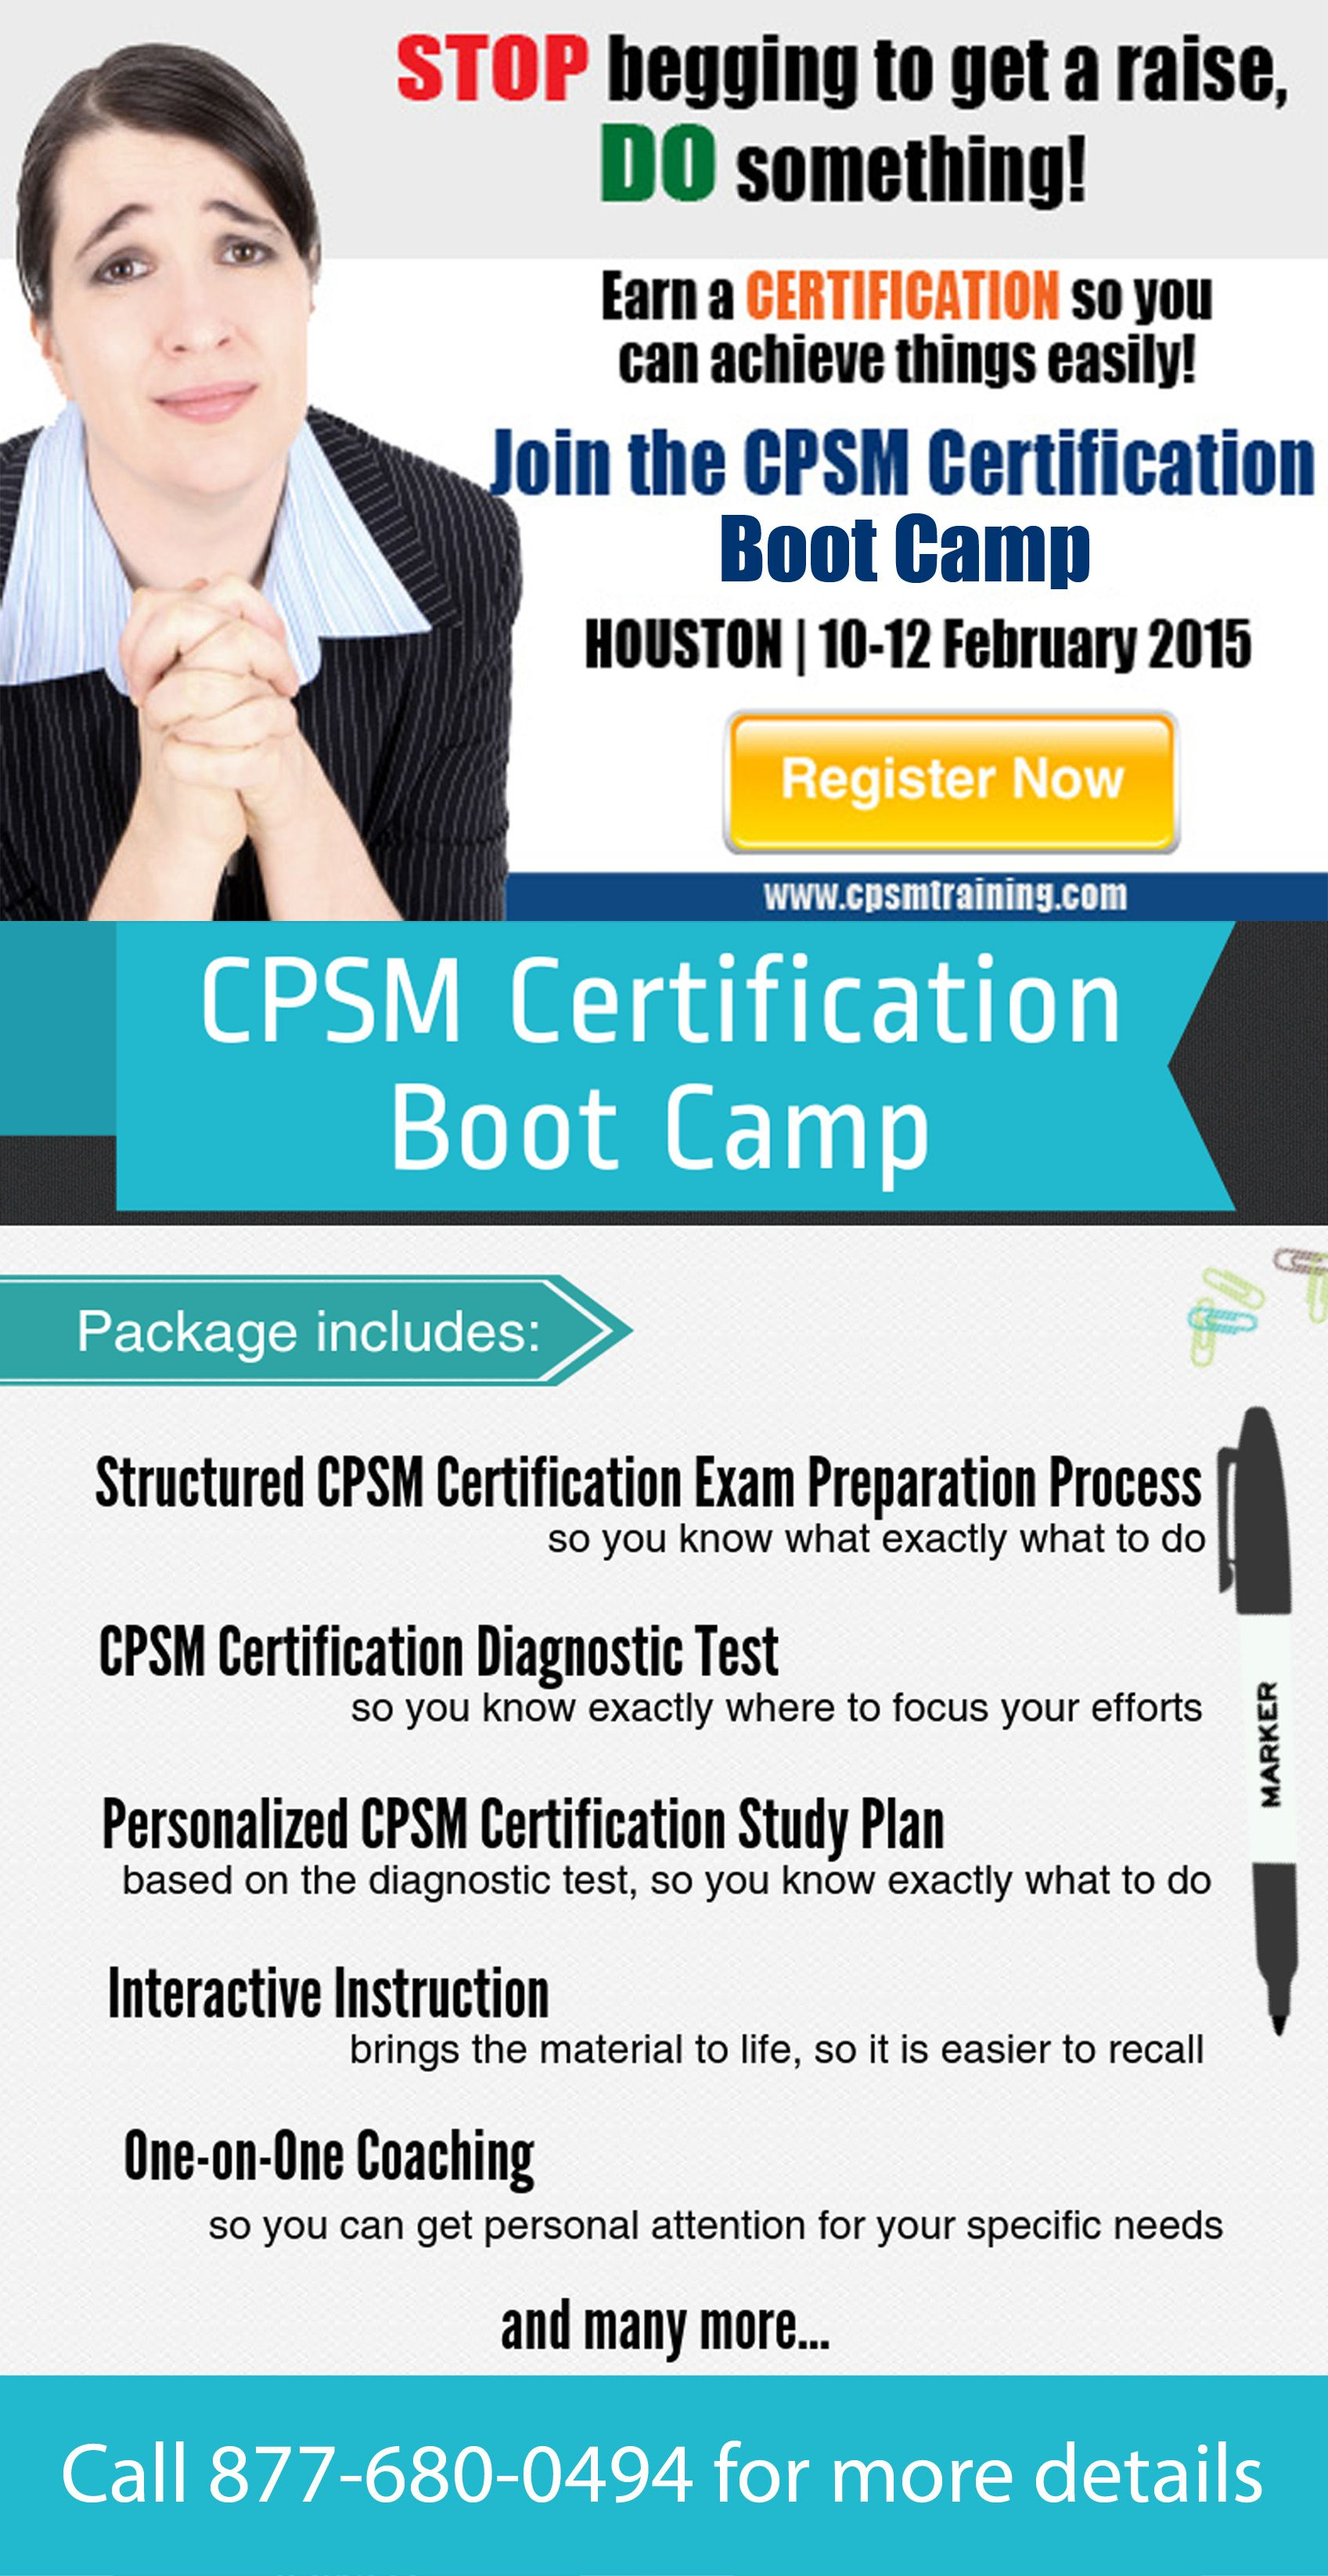 Catch The Cpsm Certification Training In Houston Texas This